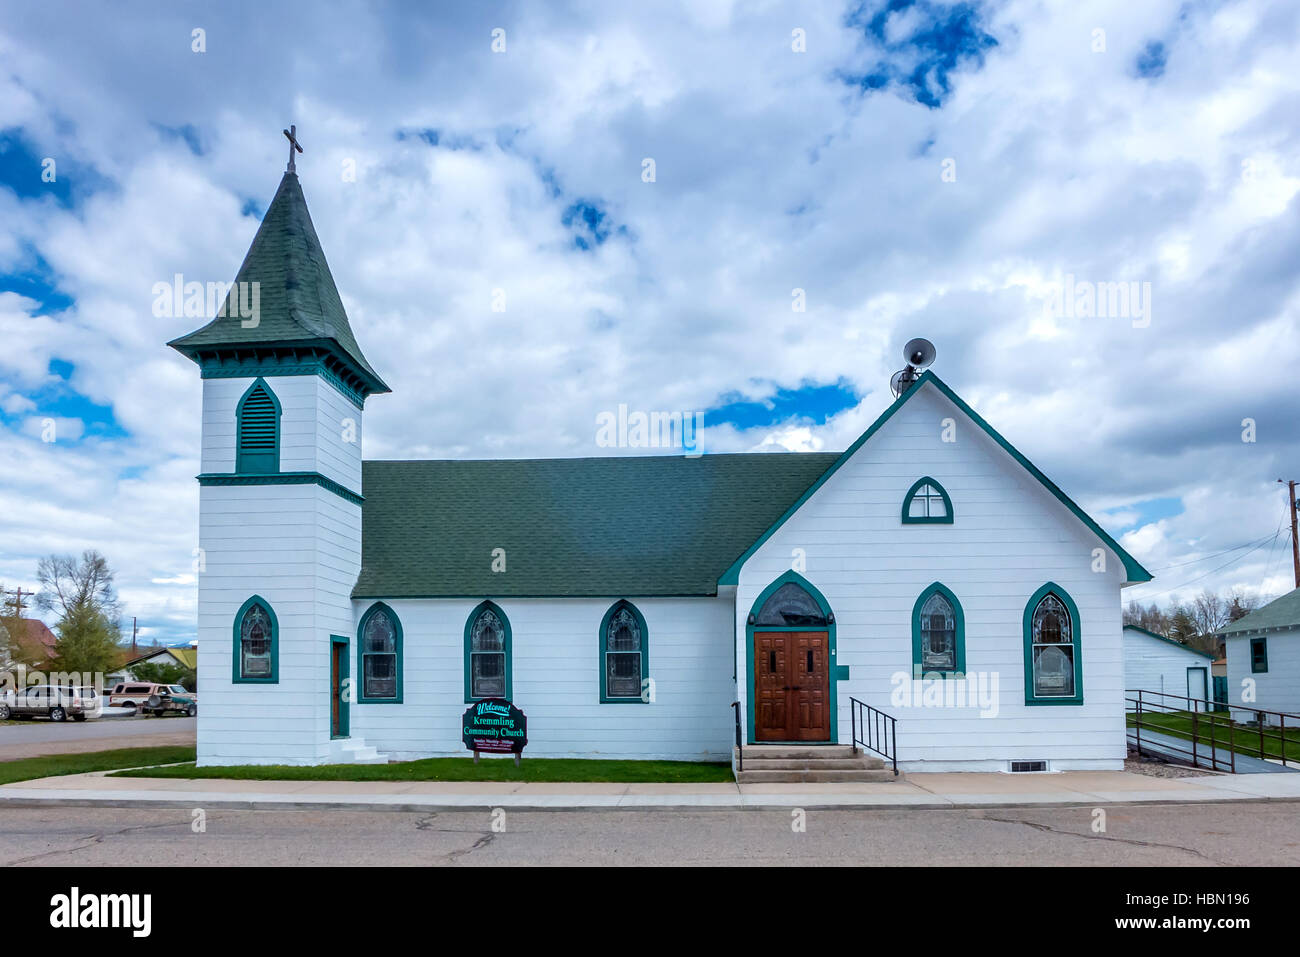 Church Or Chapel In Small Town America Stock Photo 127695826 Alamy